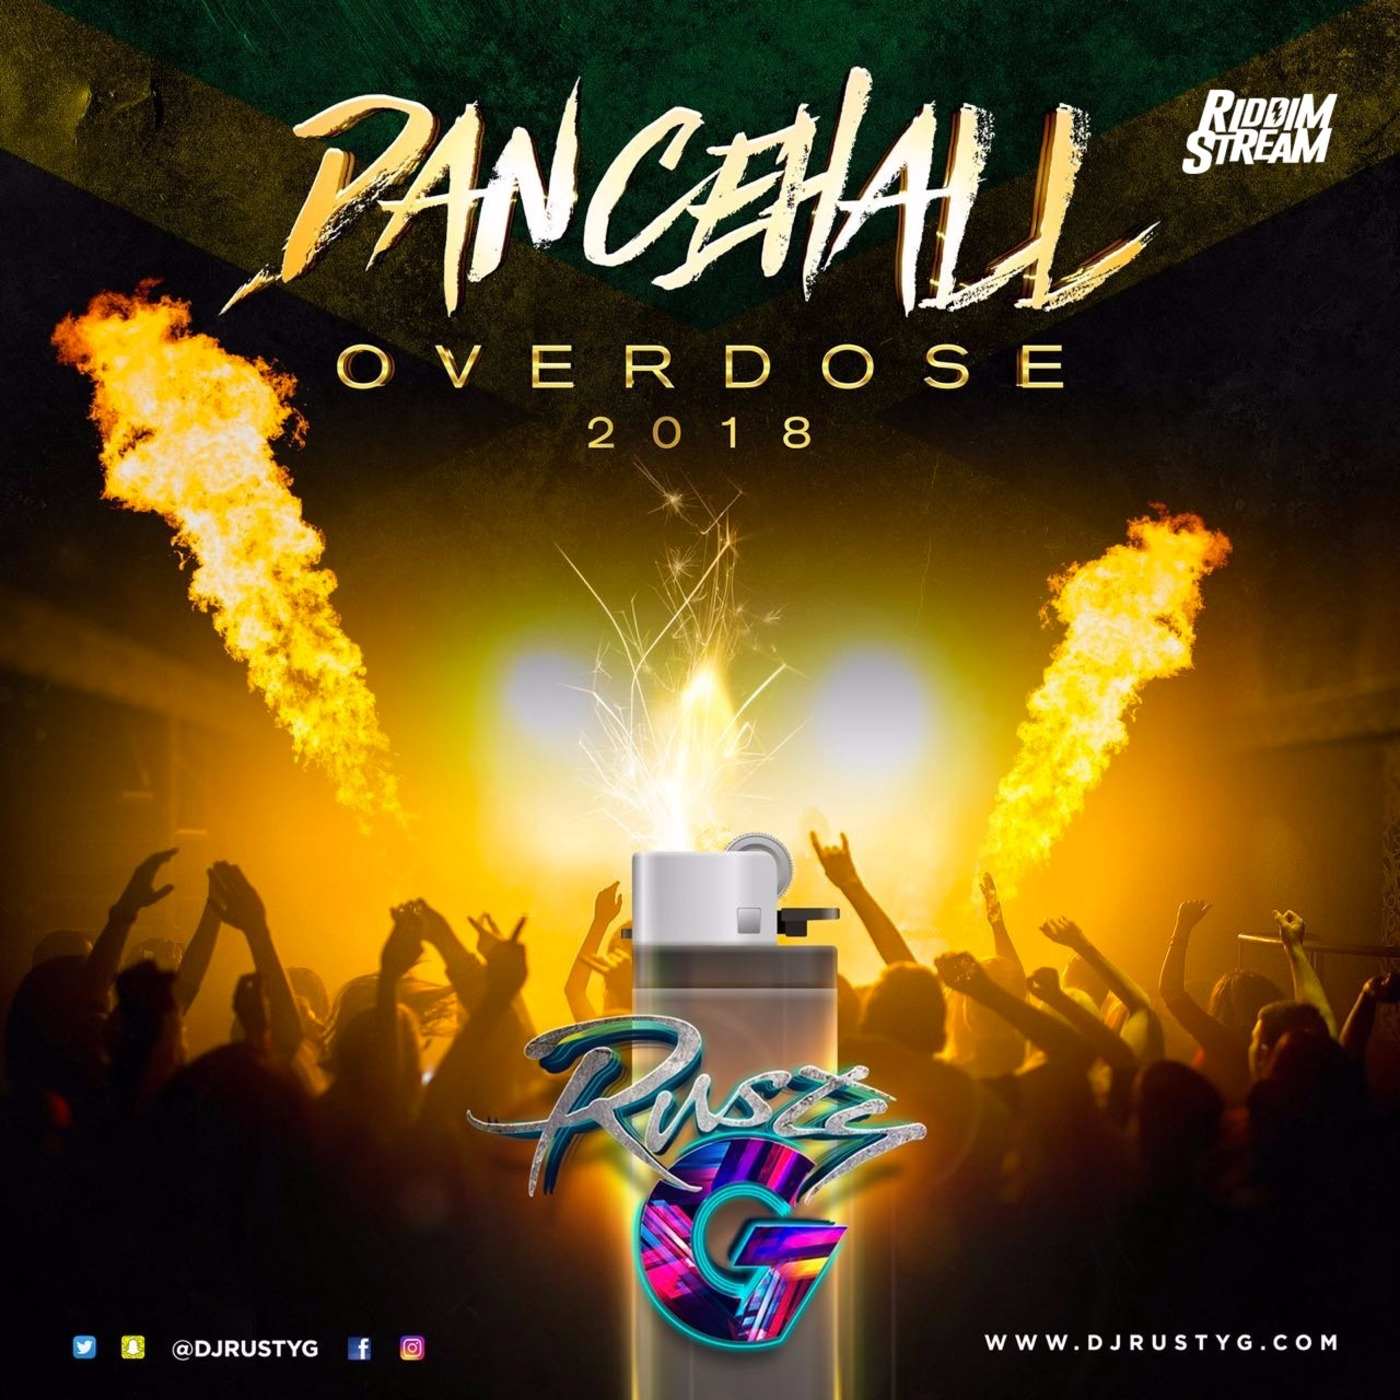 Dancehall Overdose 2018 (Dancehall Mix) - Raw DJ Rusty G's podcast